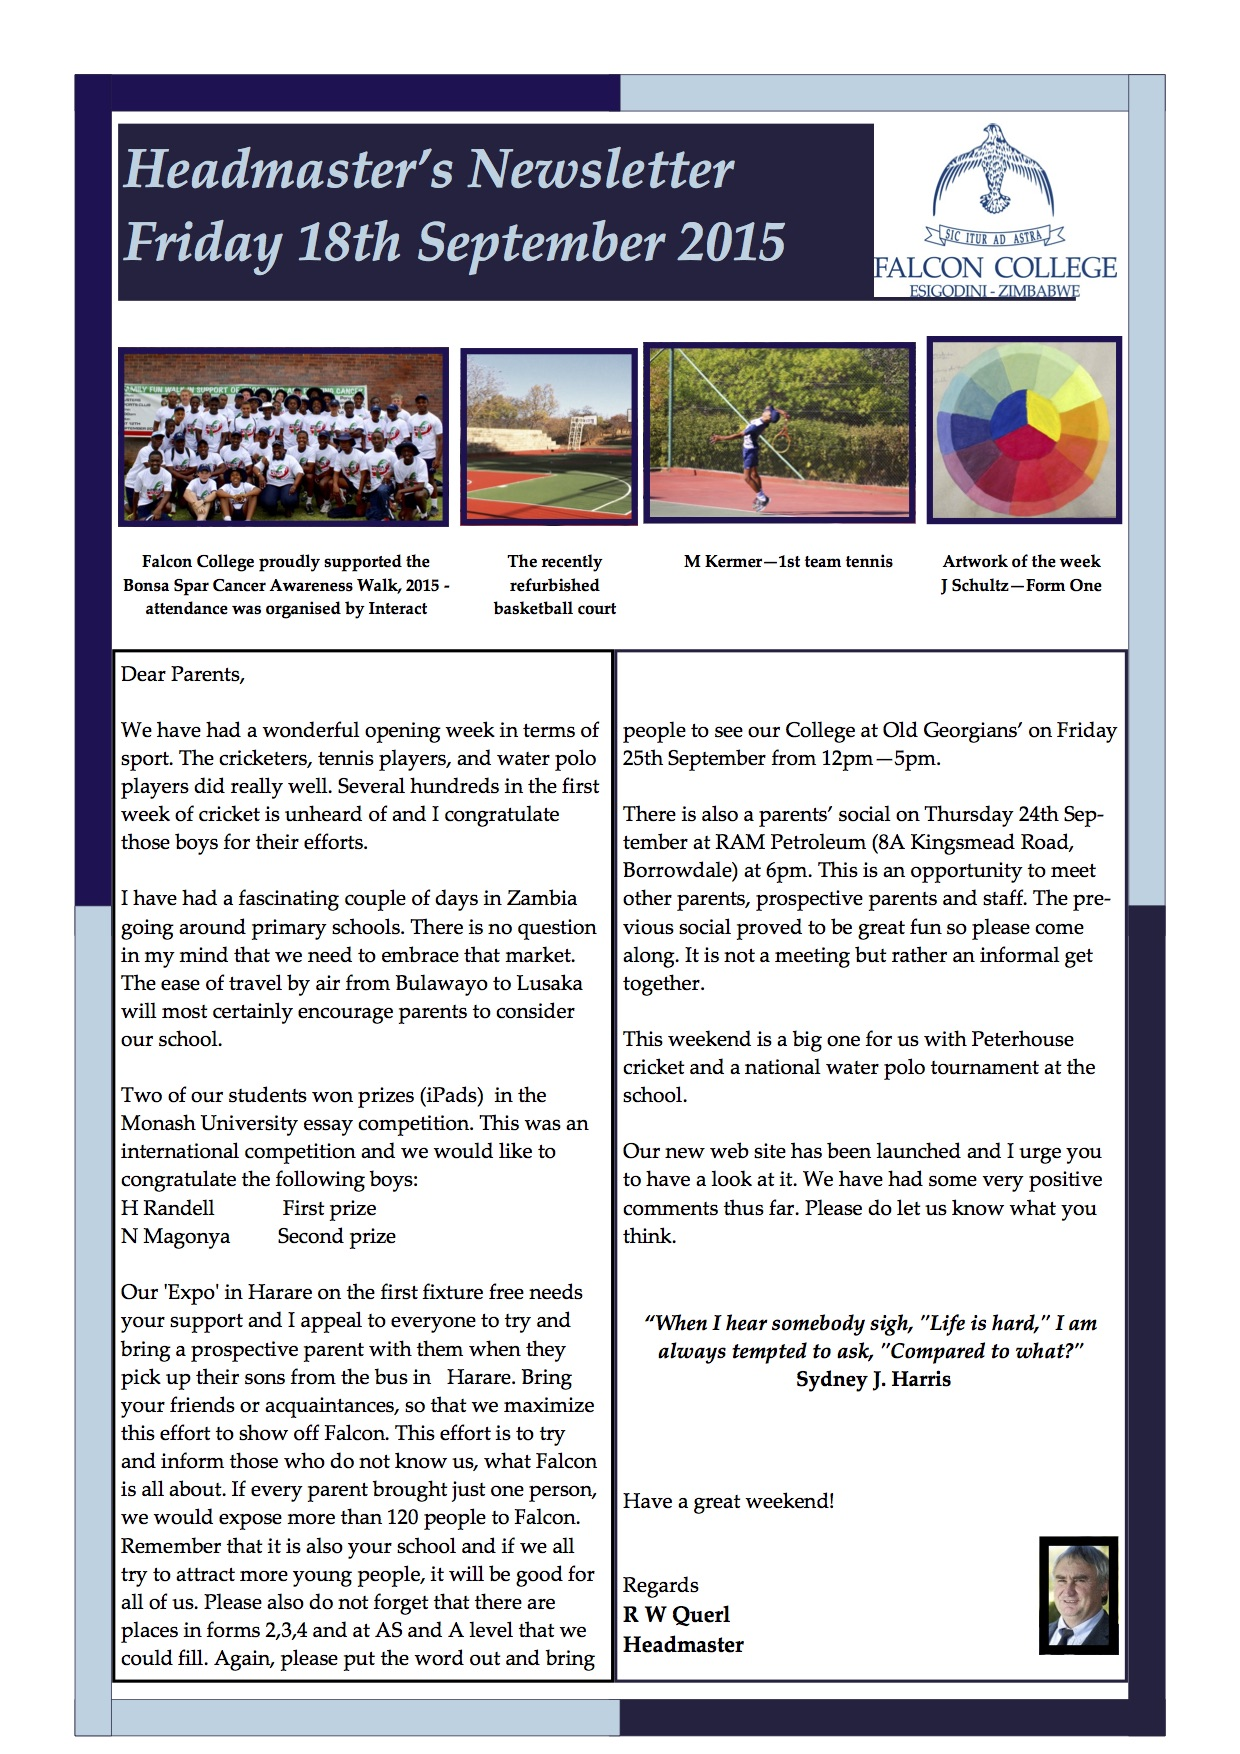 Headmaster's Newsletter Fri 18th Sept 2015 edited